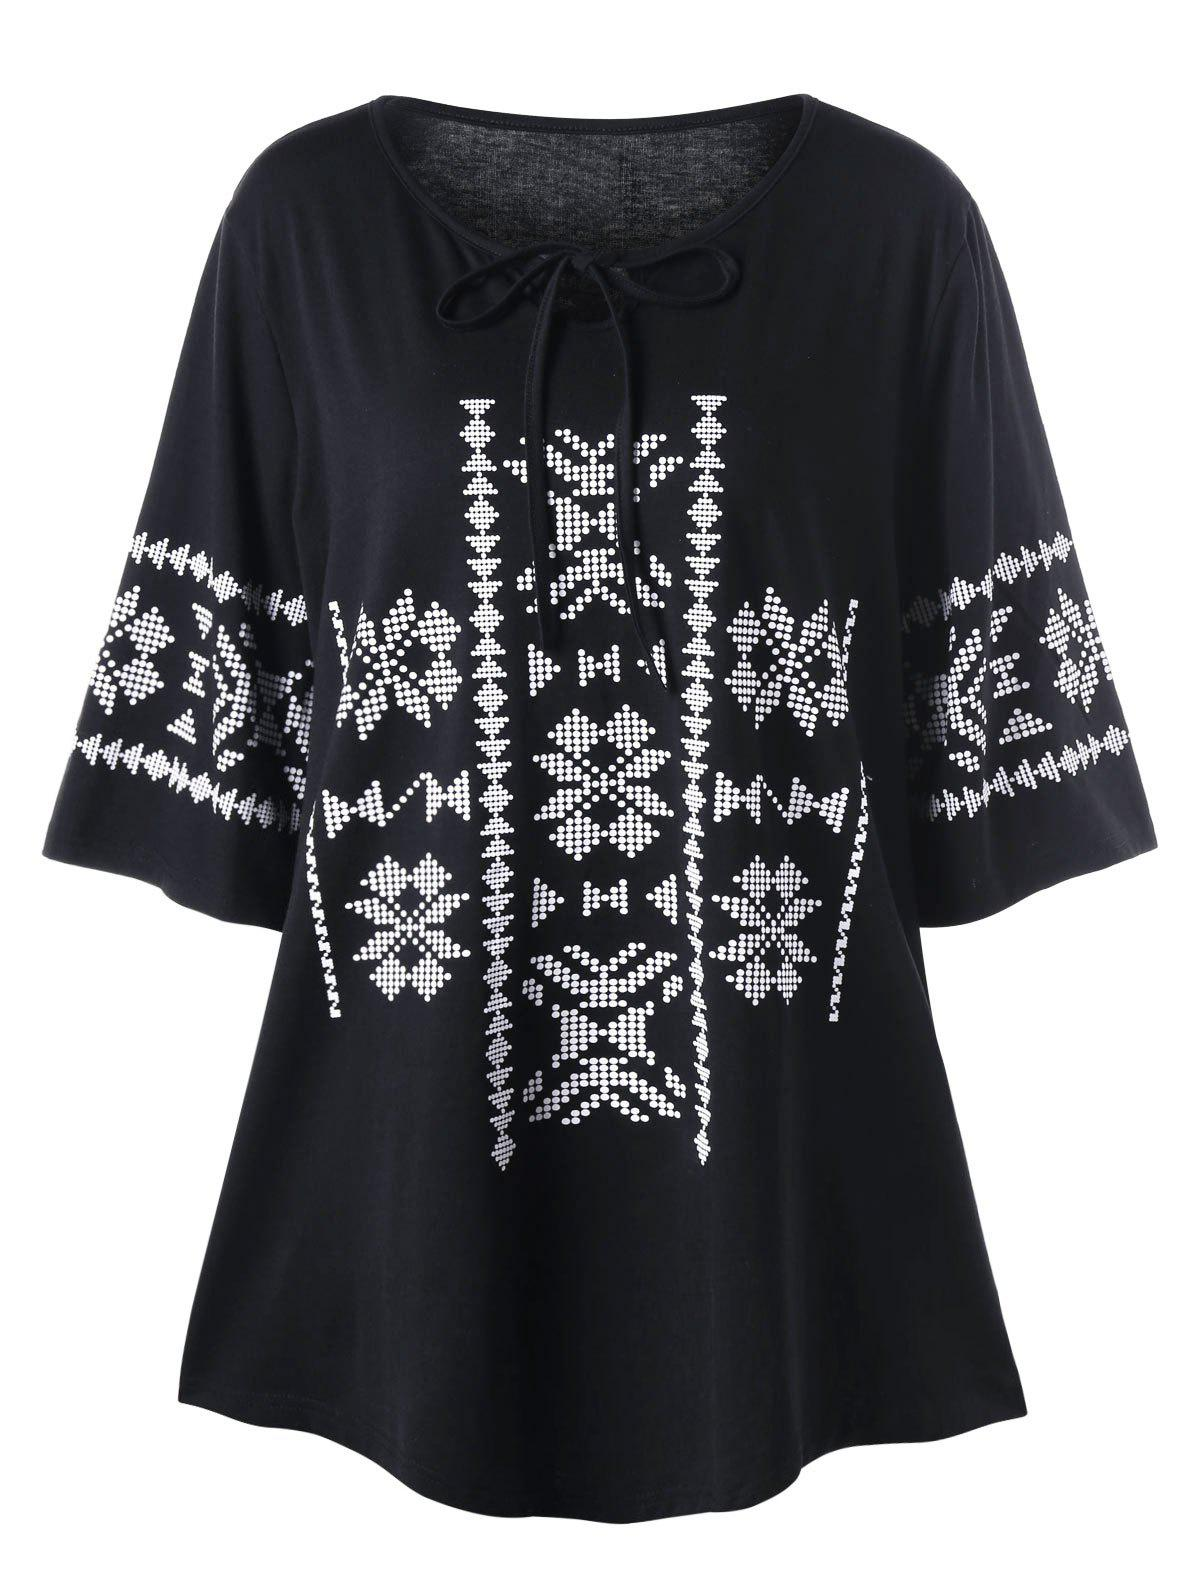 Plus Size Tie Front Monochrome TopWOMEN<br><br>Size: 5XL; Color: BLACK; Material: Polyester,Spandex; Shirt Length: Long; Sleeve Length: Half; Collar: Round Neck; Style: Casual; Season: Fall,Spring; Pattern Type: Tribal Print; Weight: 0.3000kg; Package Contents: 1 x Top;